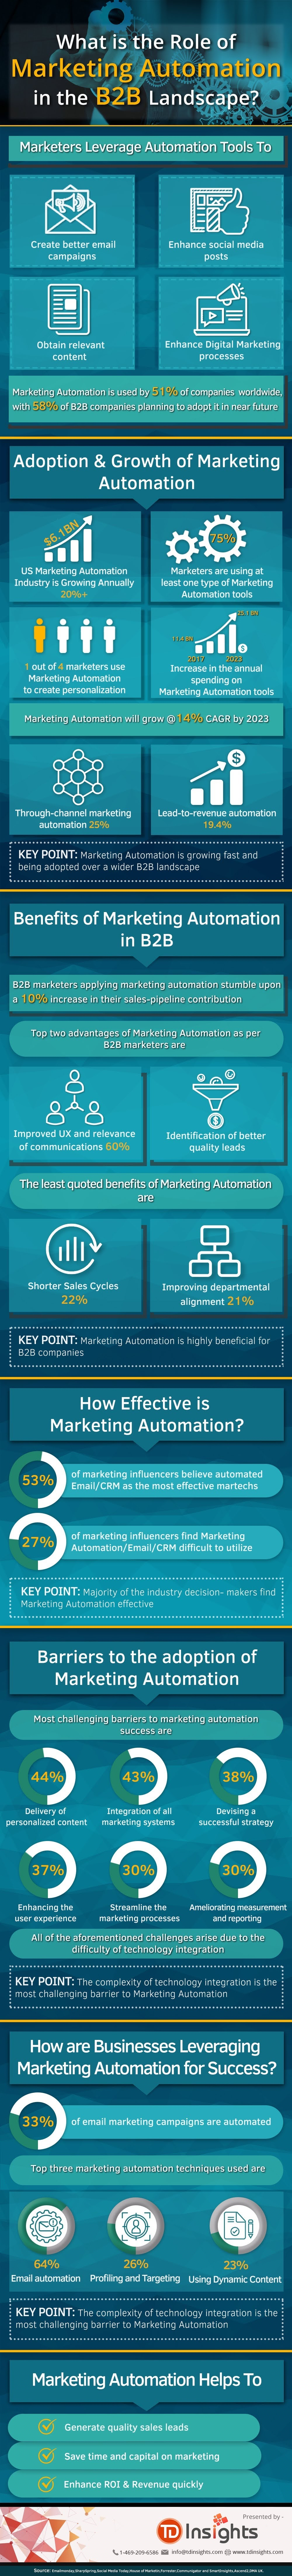 What is the Role of Marketing Automation in the B2B Landscape? infographic